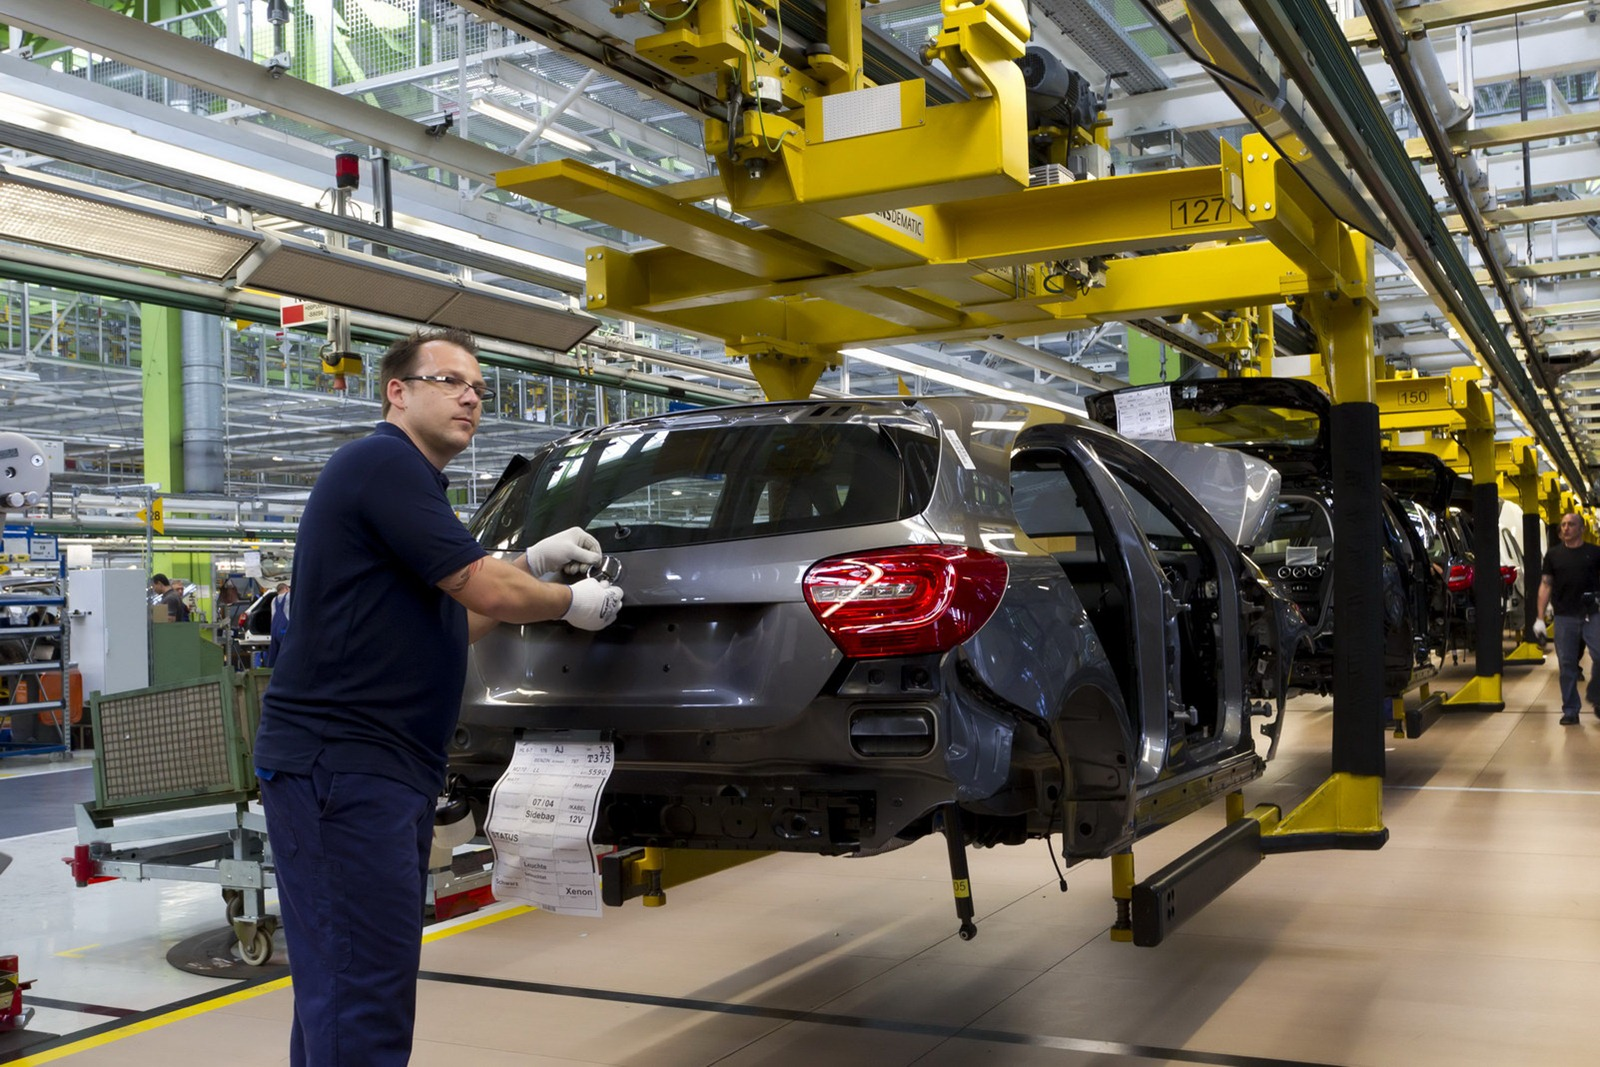 2013 mercedes benz a class photos production line 01